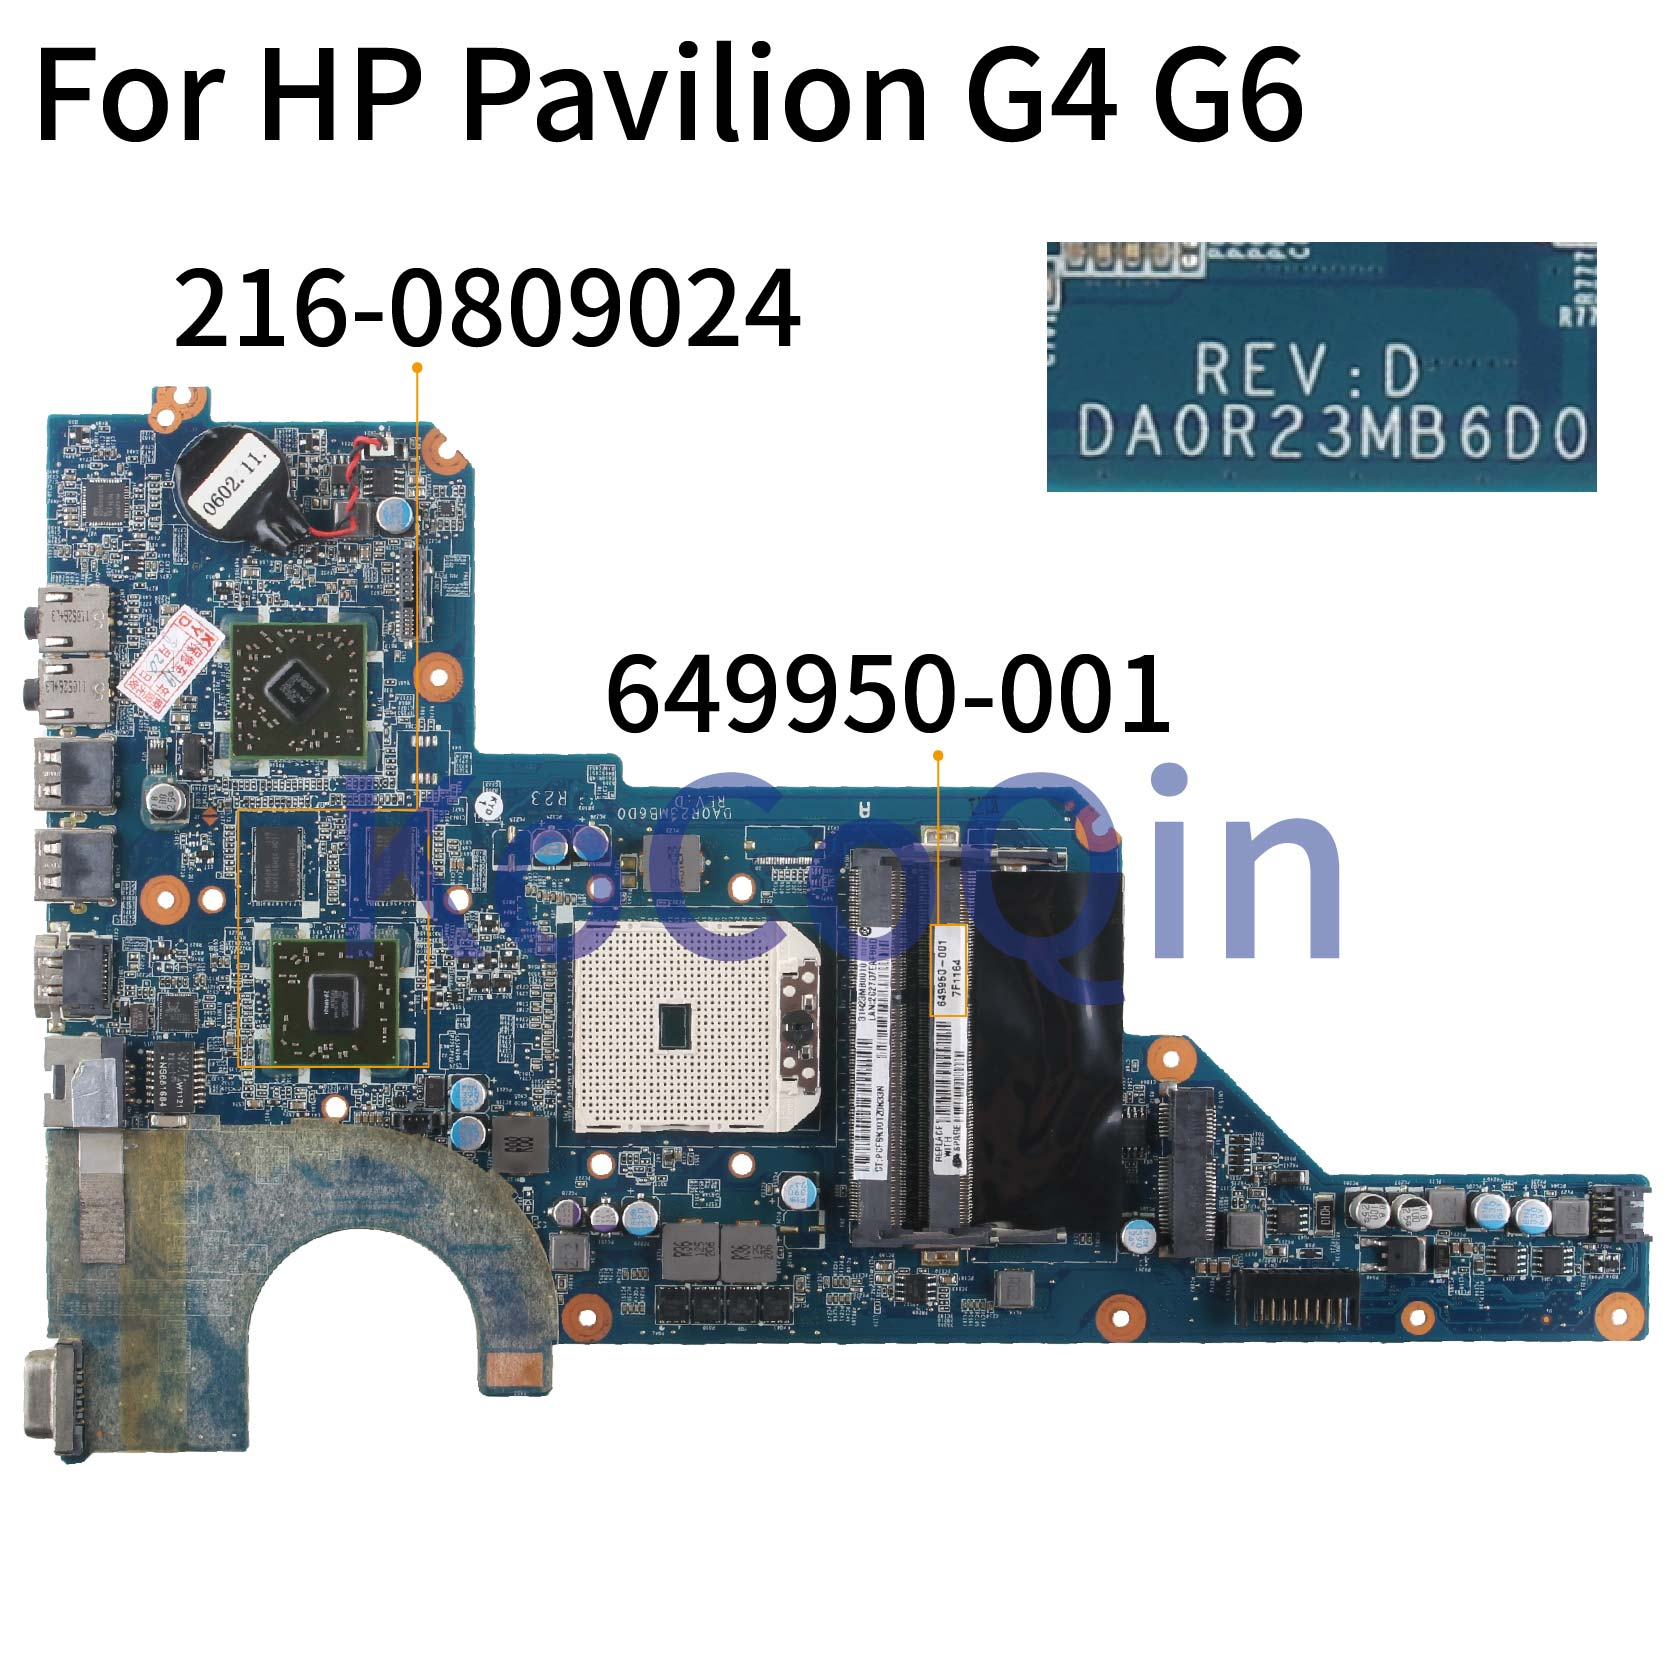 KoCoQin laptop Motherboard For HP Pavilion G4 G6 HD6470 Socket FS1 Mainboard 649950-001 649950-501 DA0R23MB6D0 216-0809024